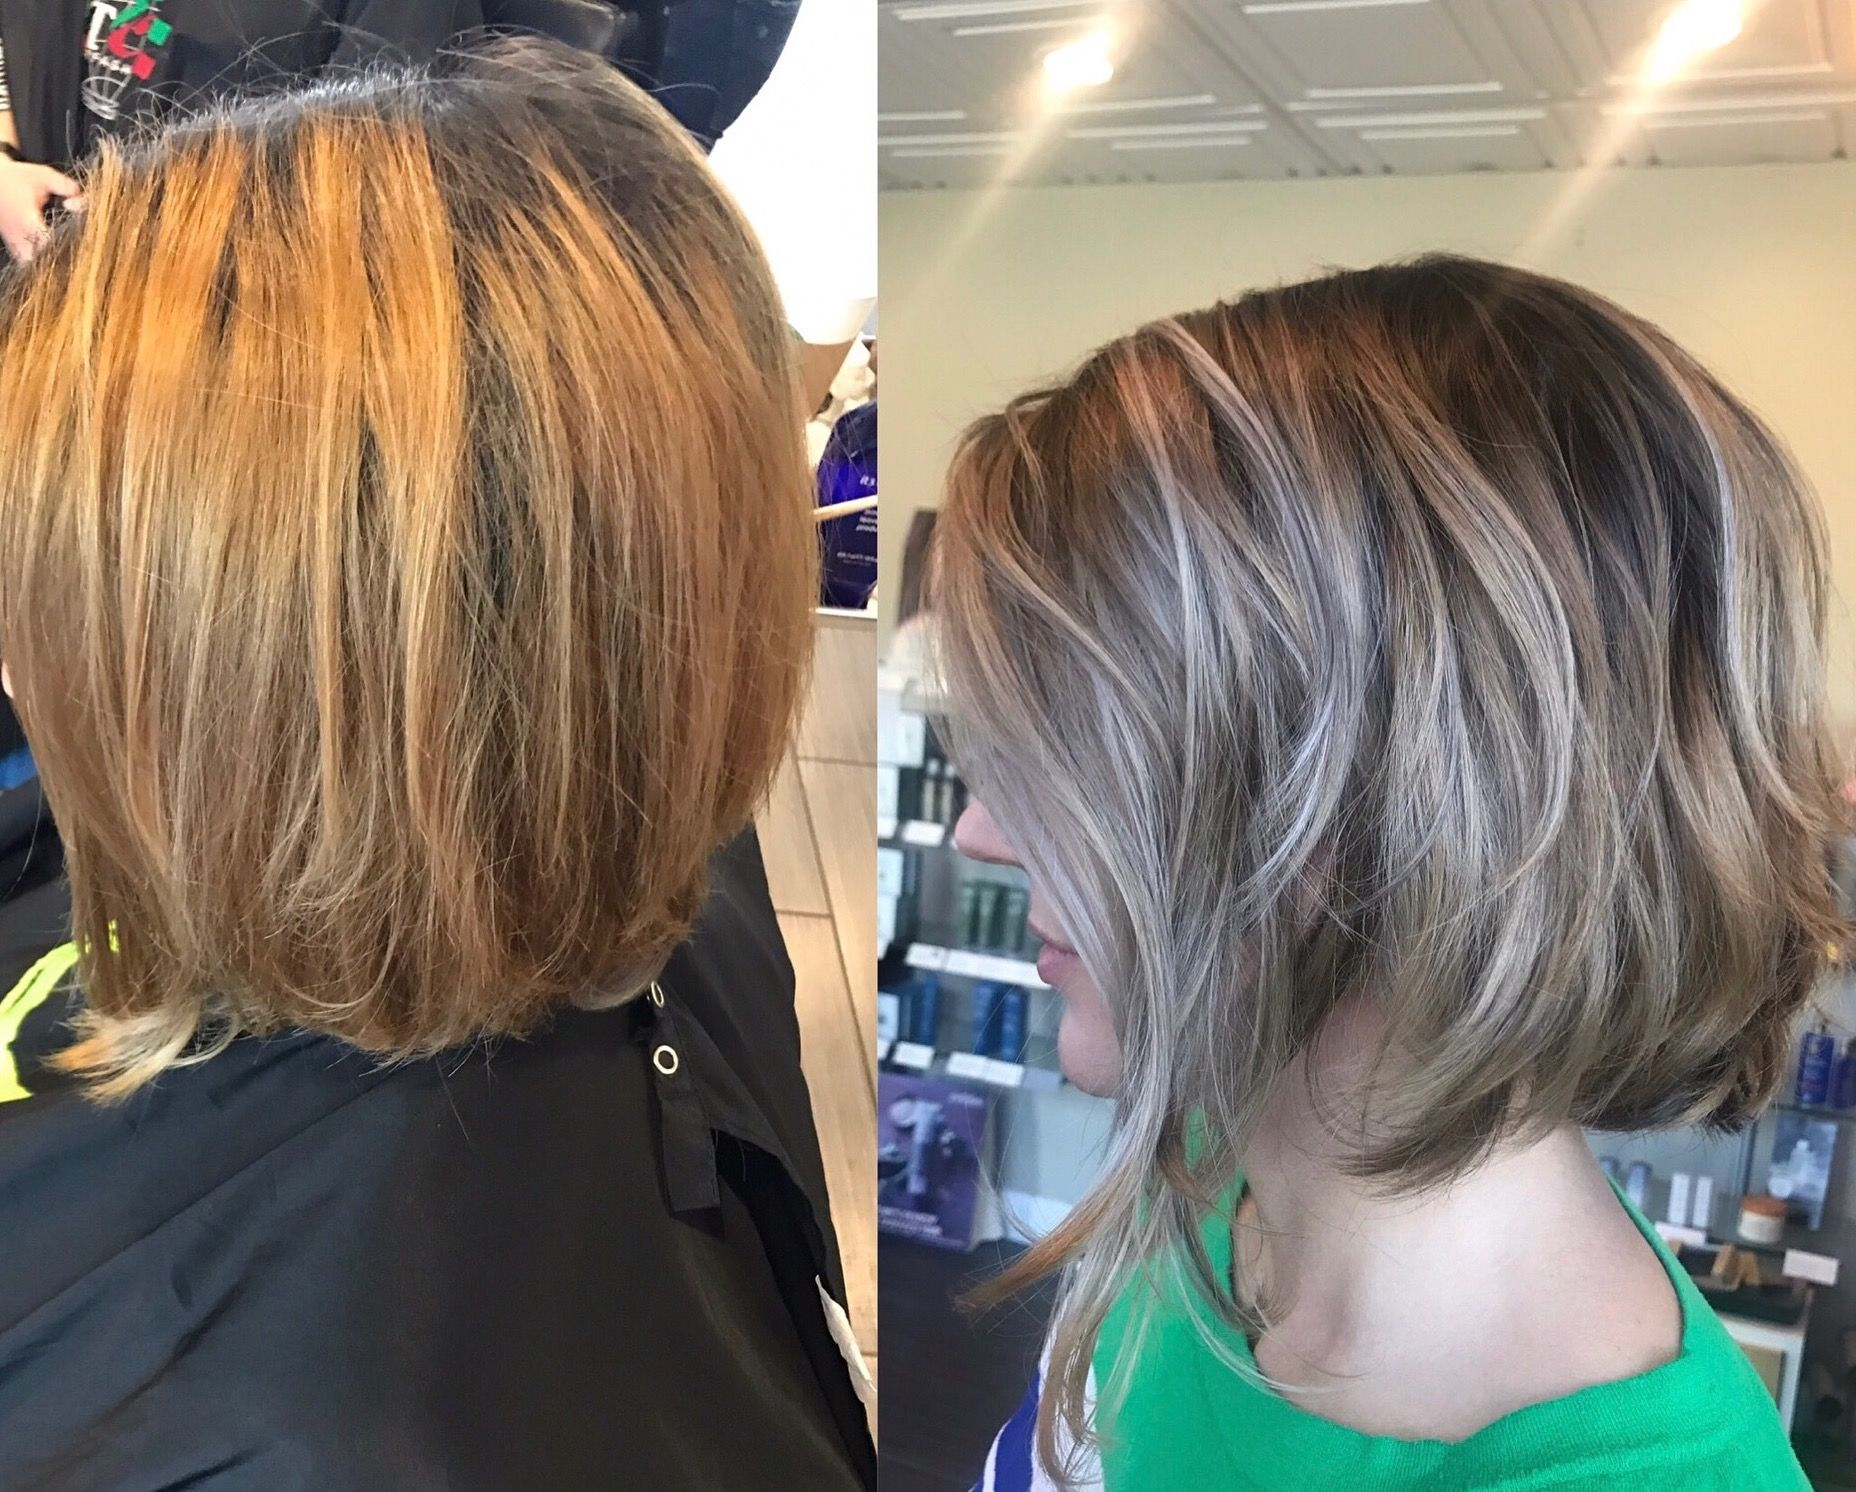 Before To After Blonde Bob Lob Hair Makeover Ideas Hair Transformation From Brassy Light Ash Blonde Hair Color Ash Blonde Hair Colour Light Ash Blonde Hair